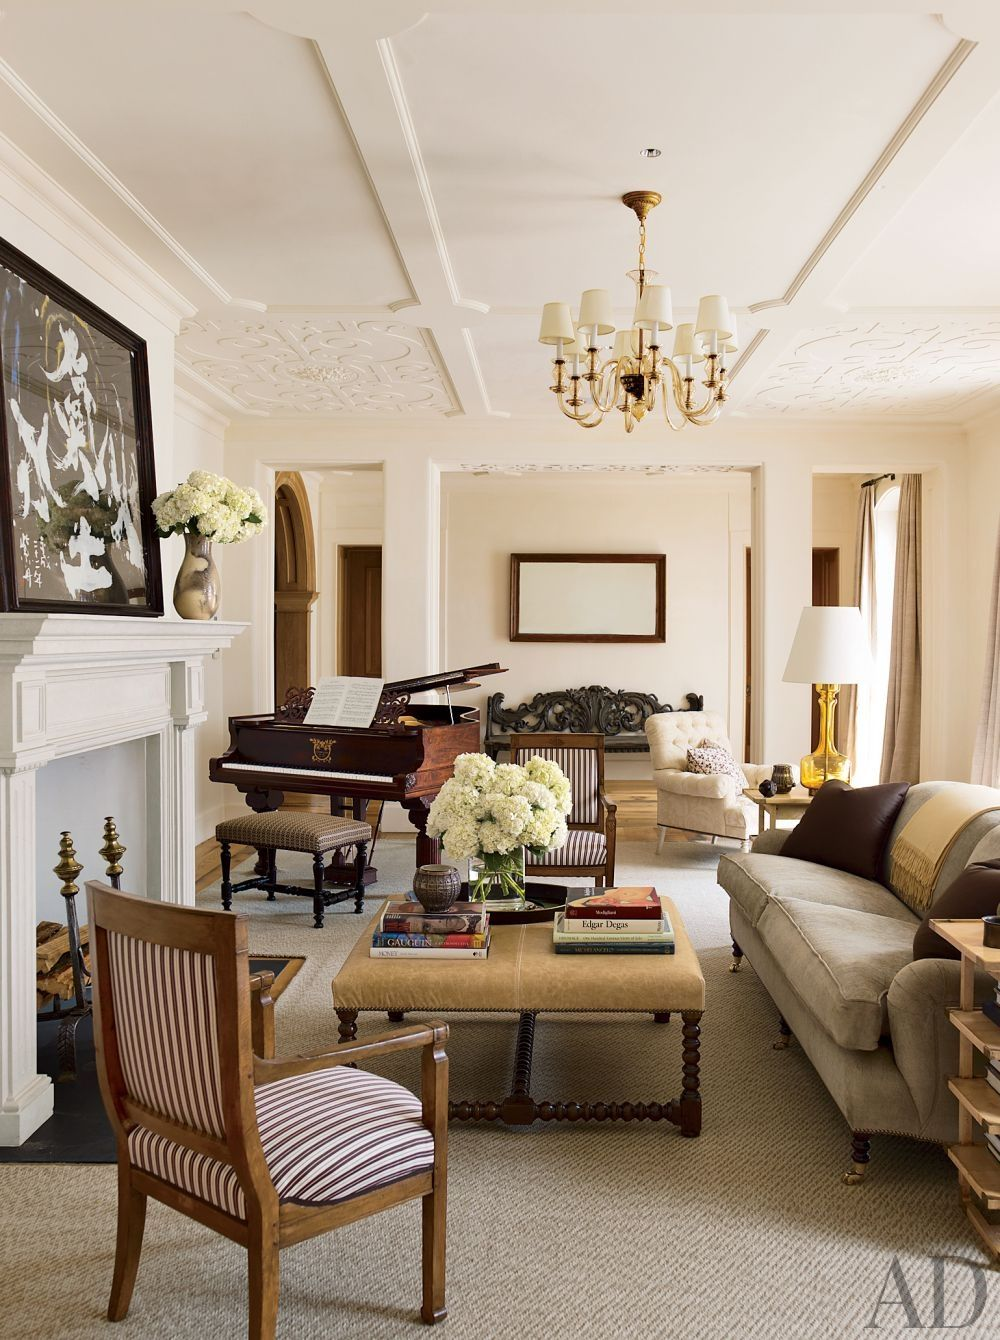 Traditional living room interior design ideas also great inspirational rh pinterest